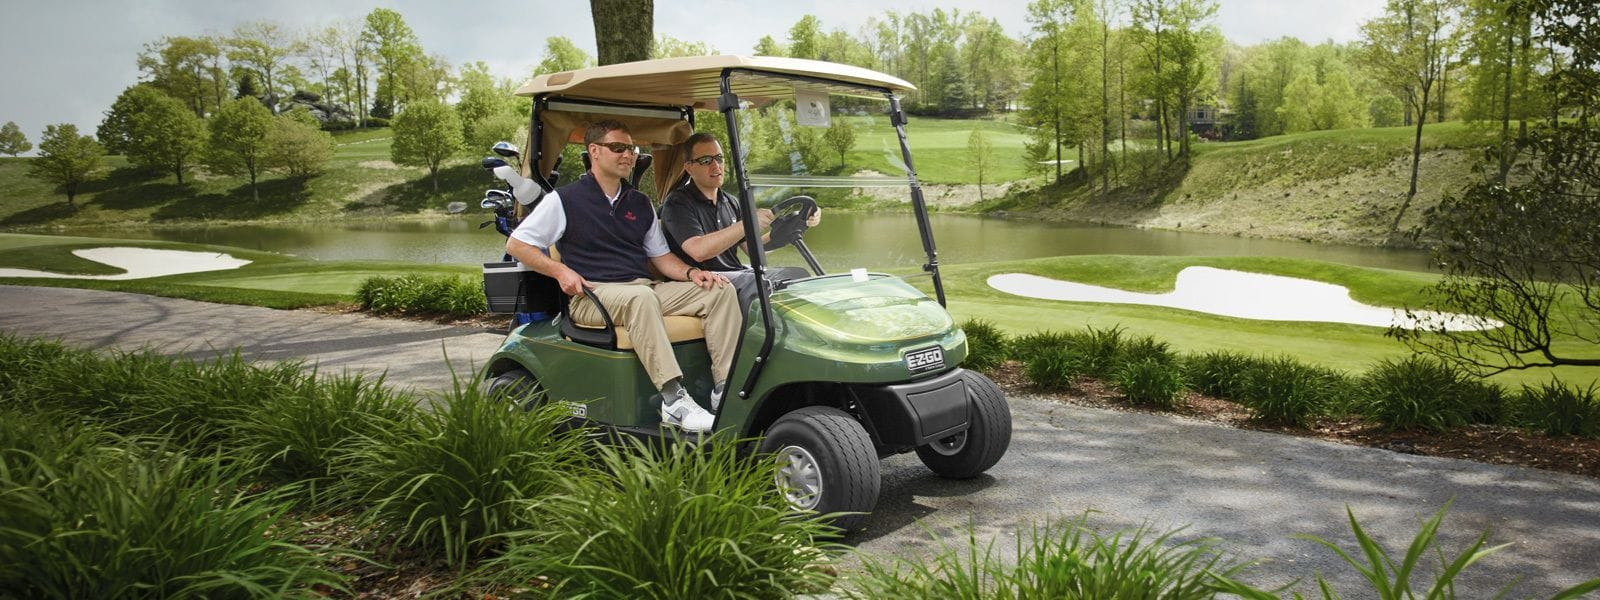 Golf Car World | E-Z-GO Golf Cars | Perth